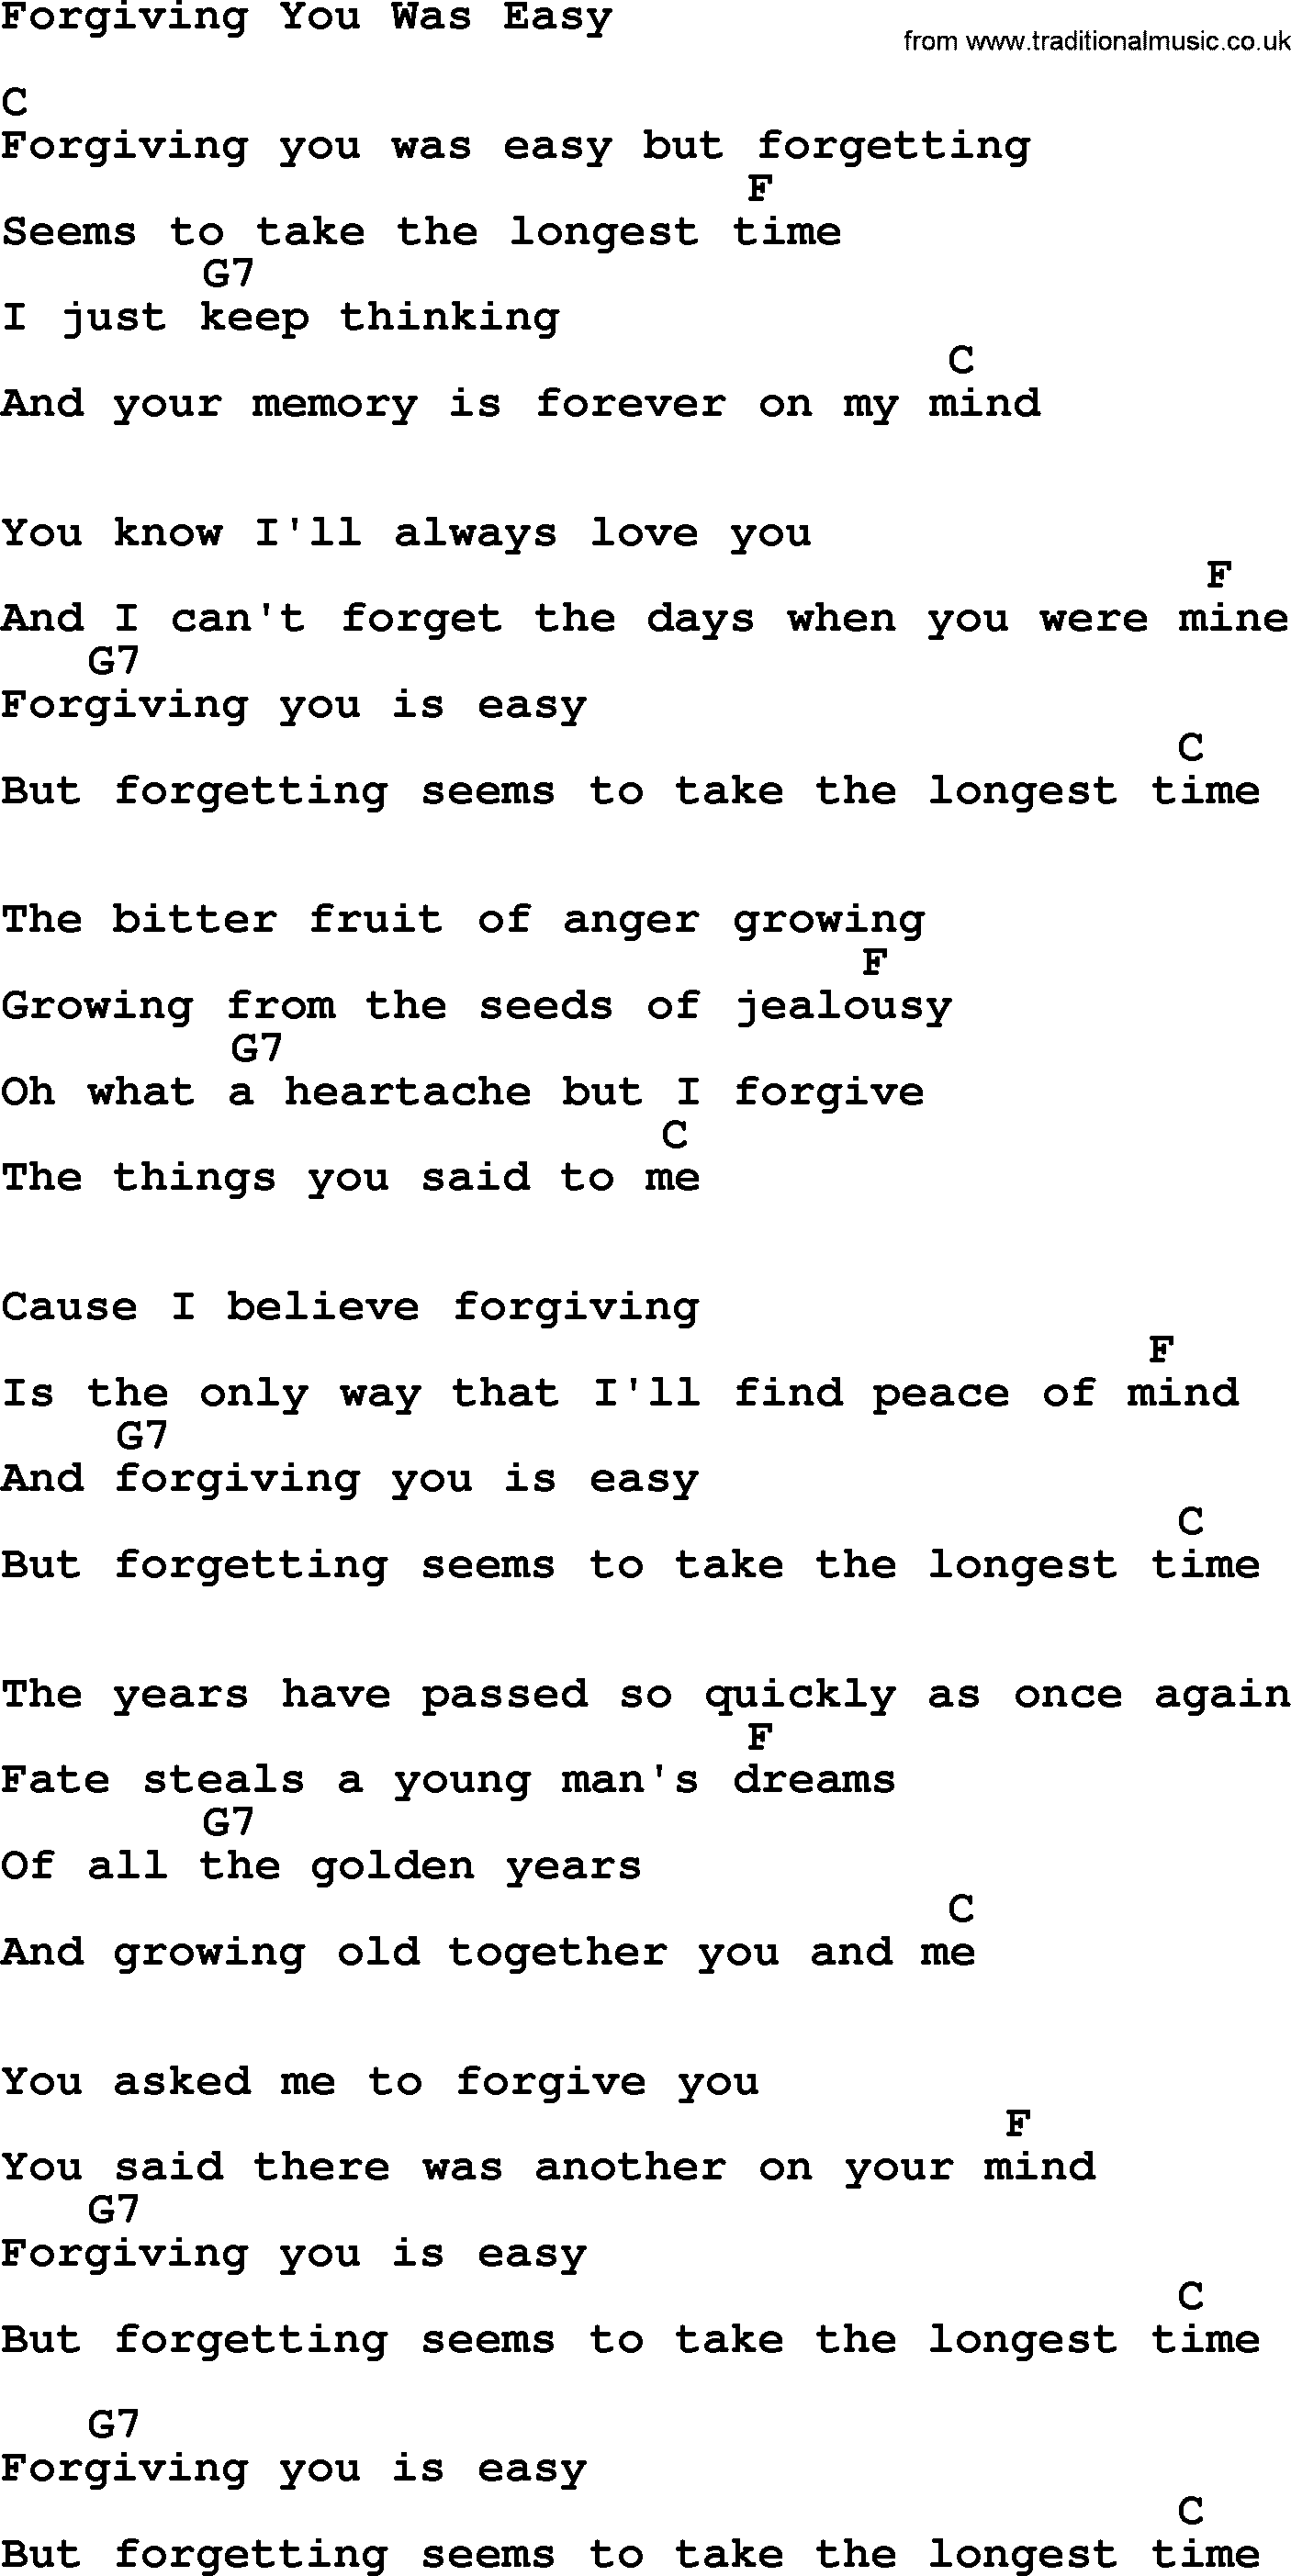 Willie Nelson Song Forgiving You Was Easy Lyrics And Chords